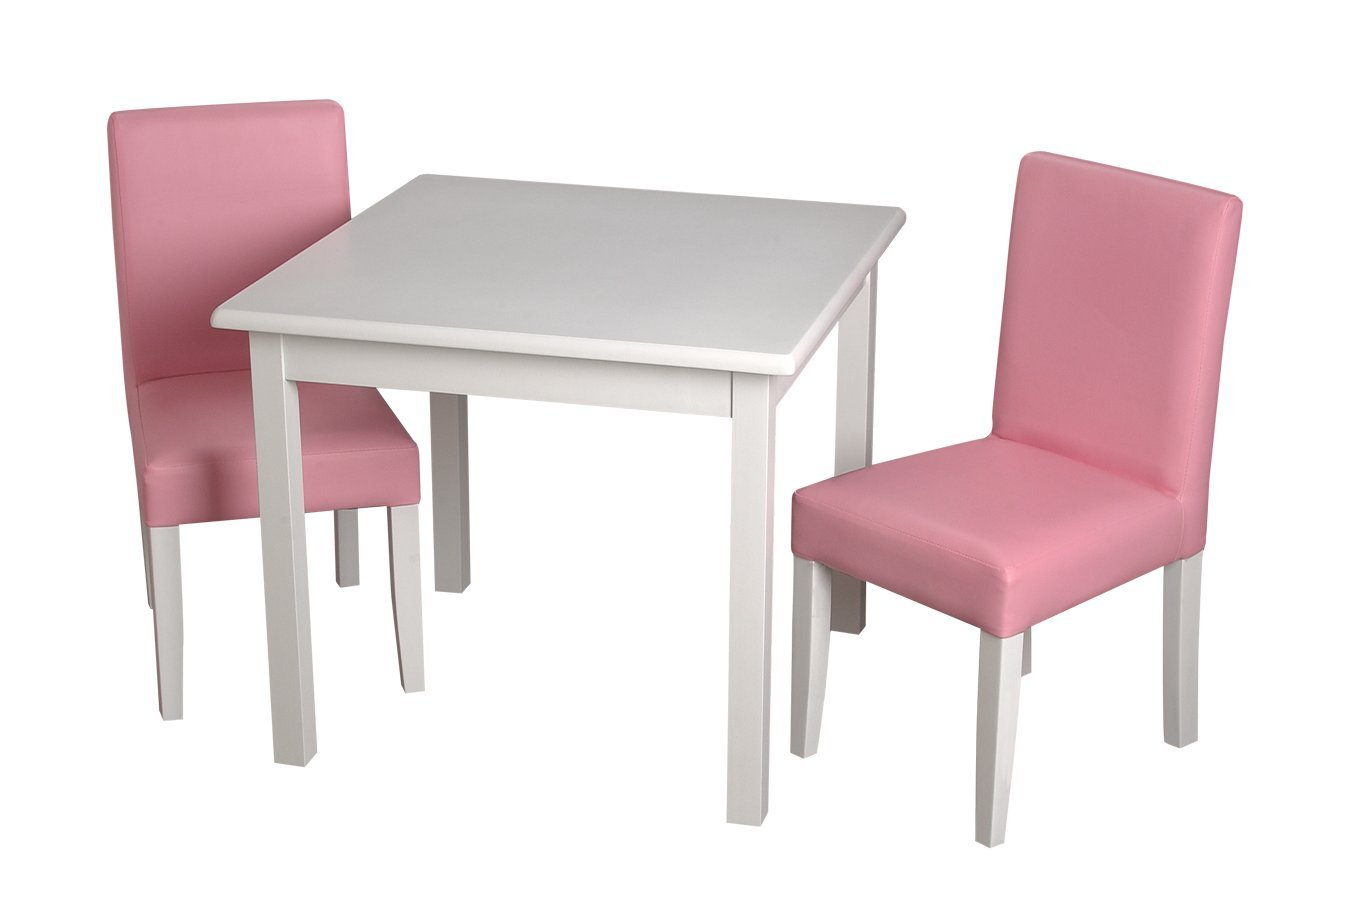 Gift Mark Children's Square Table with 2 Pink Completely Upholstered Chairs, White